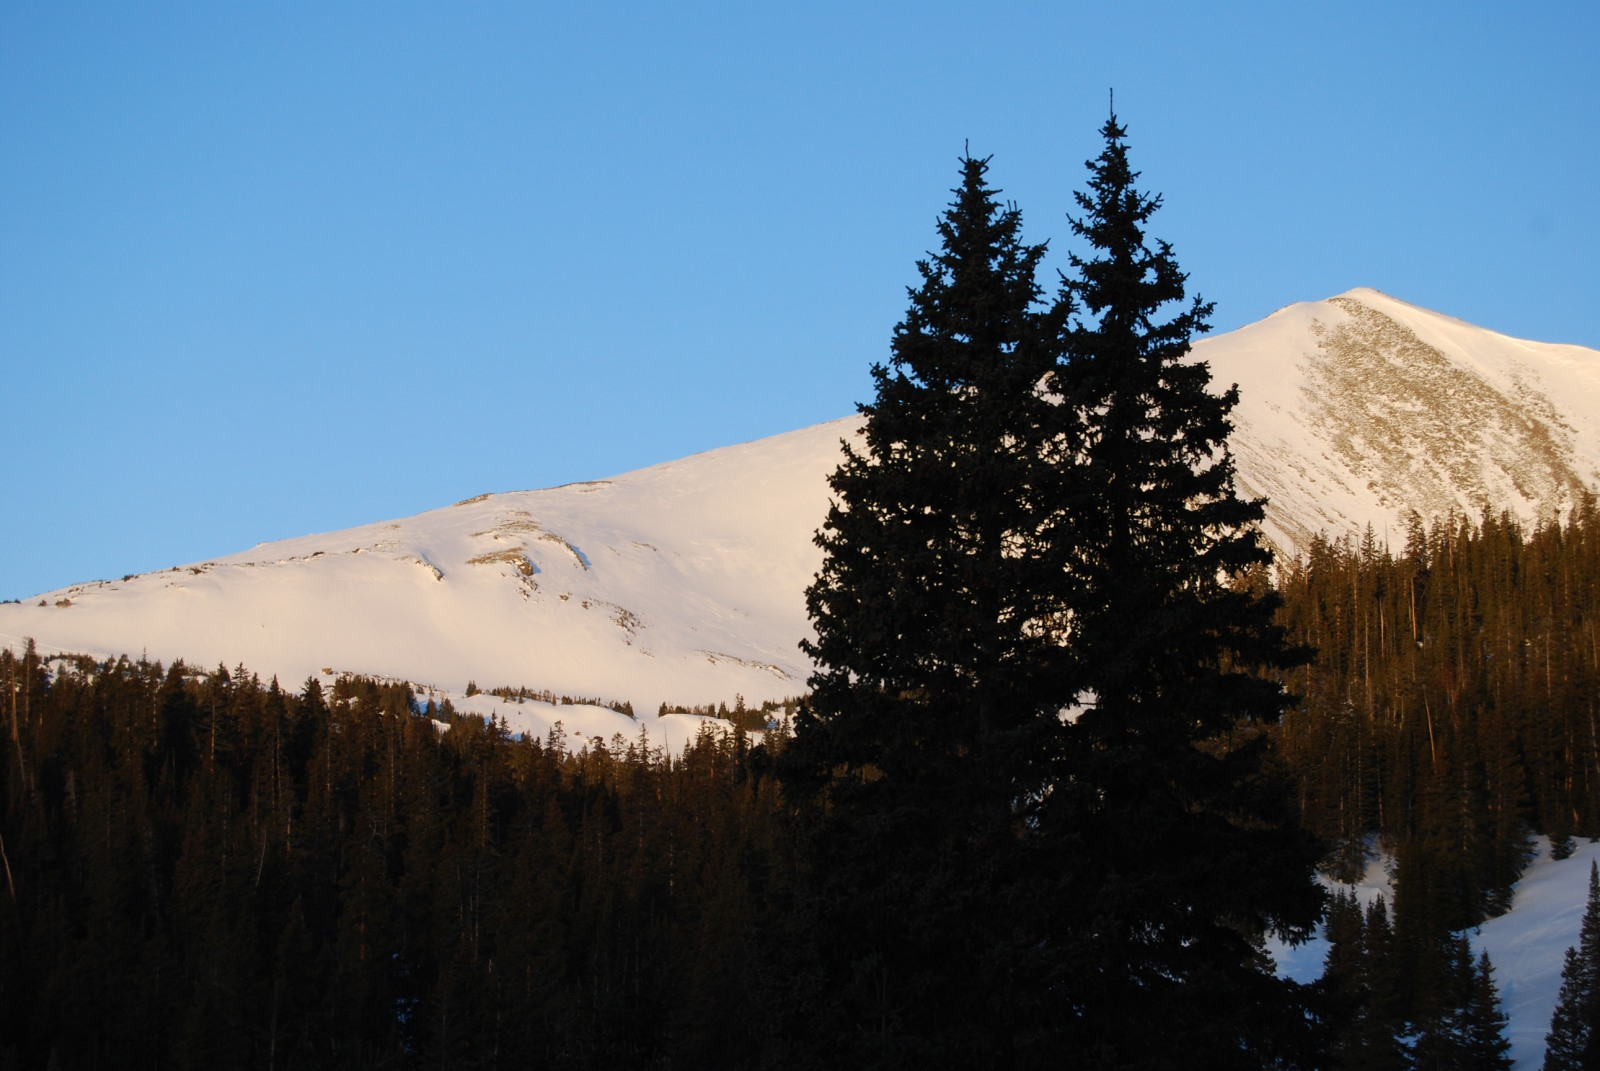 Homestake Peak seen from 10th Mountain Division Hut in March, 2009